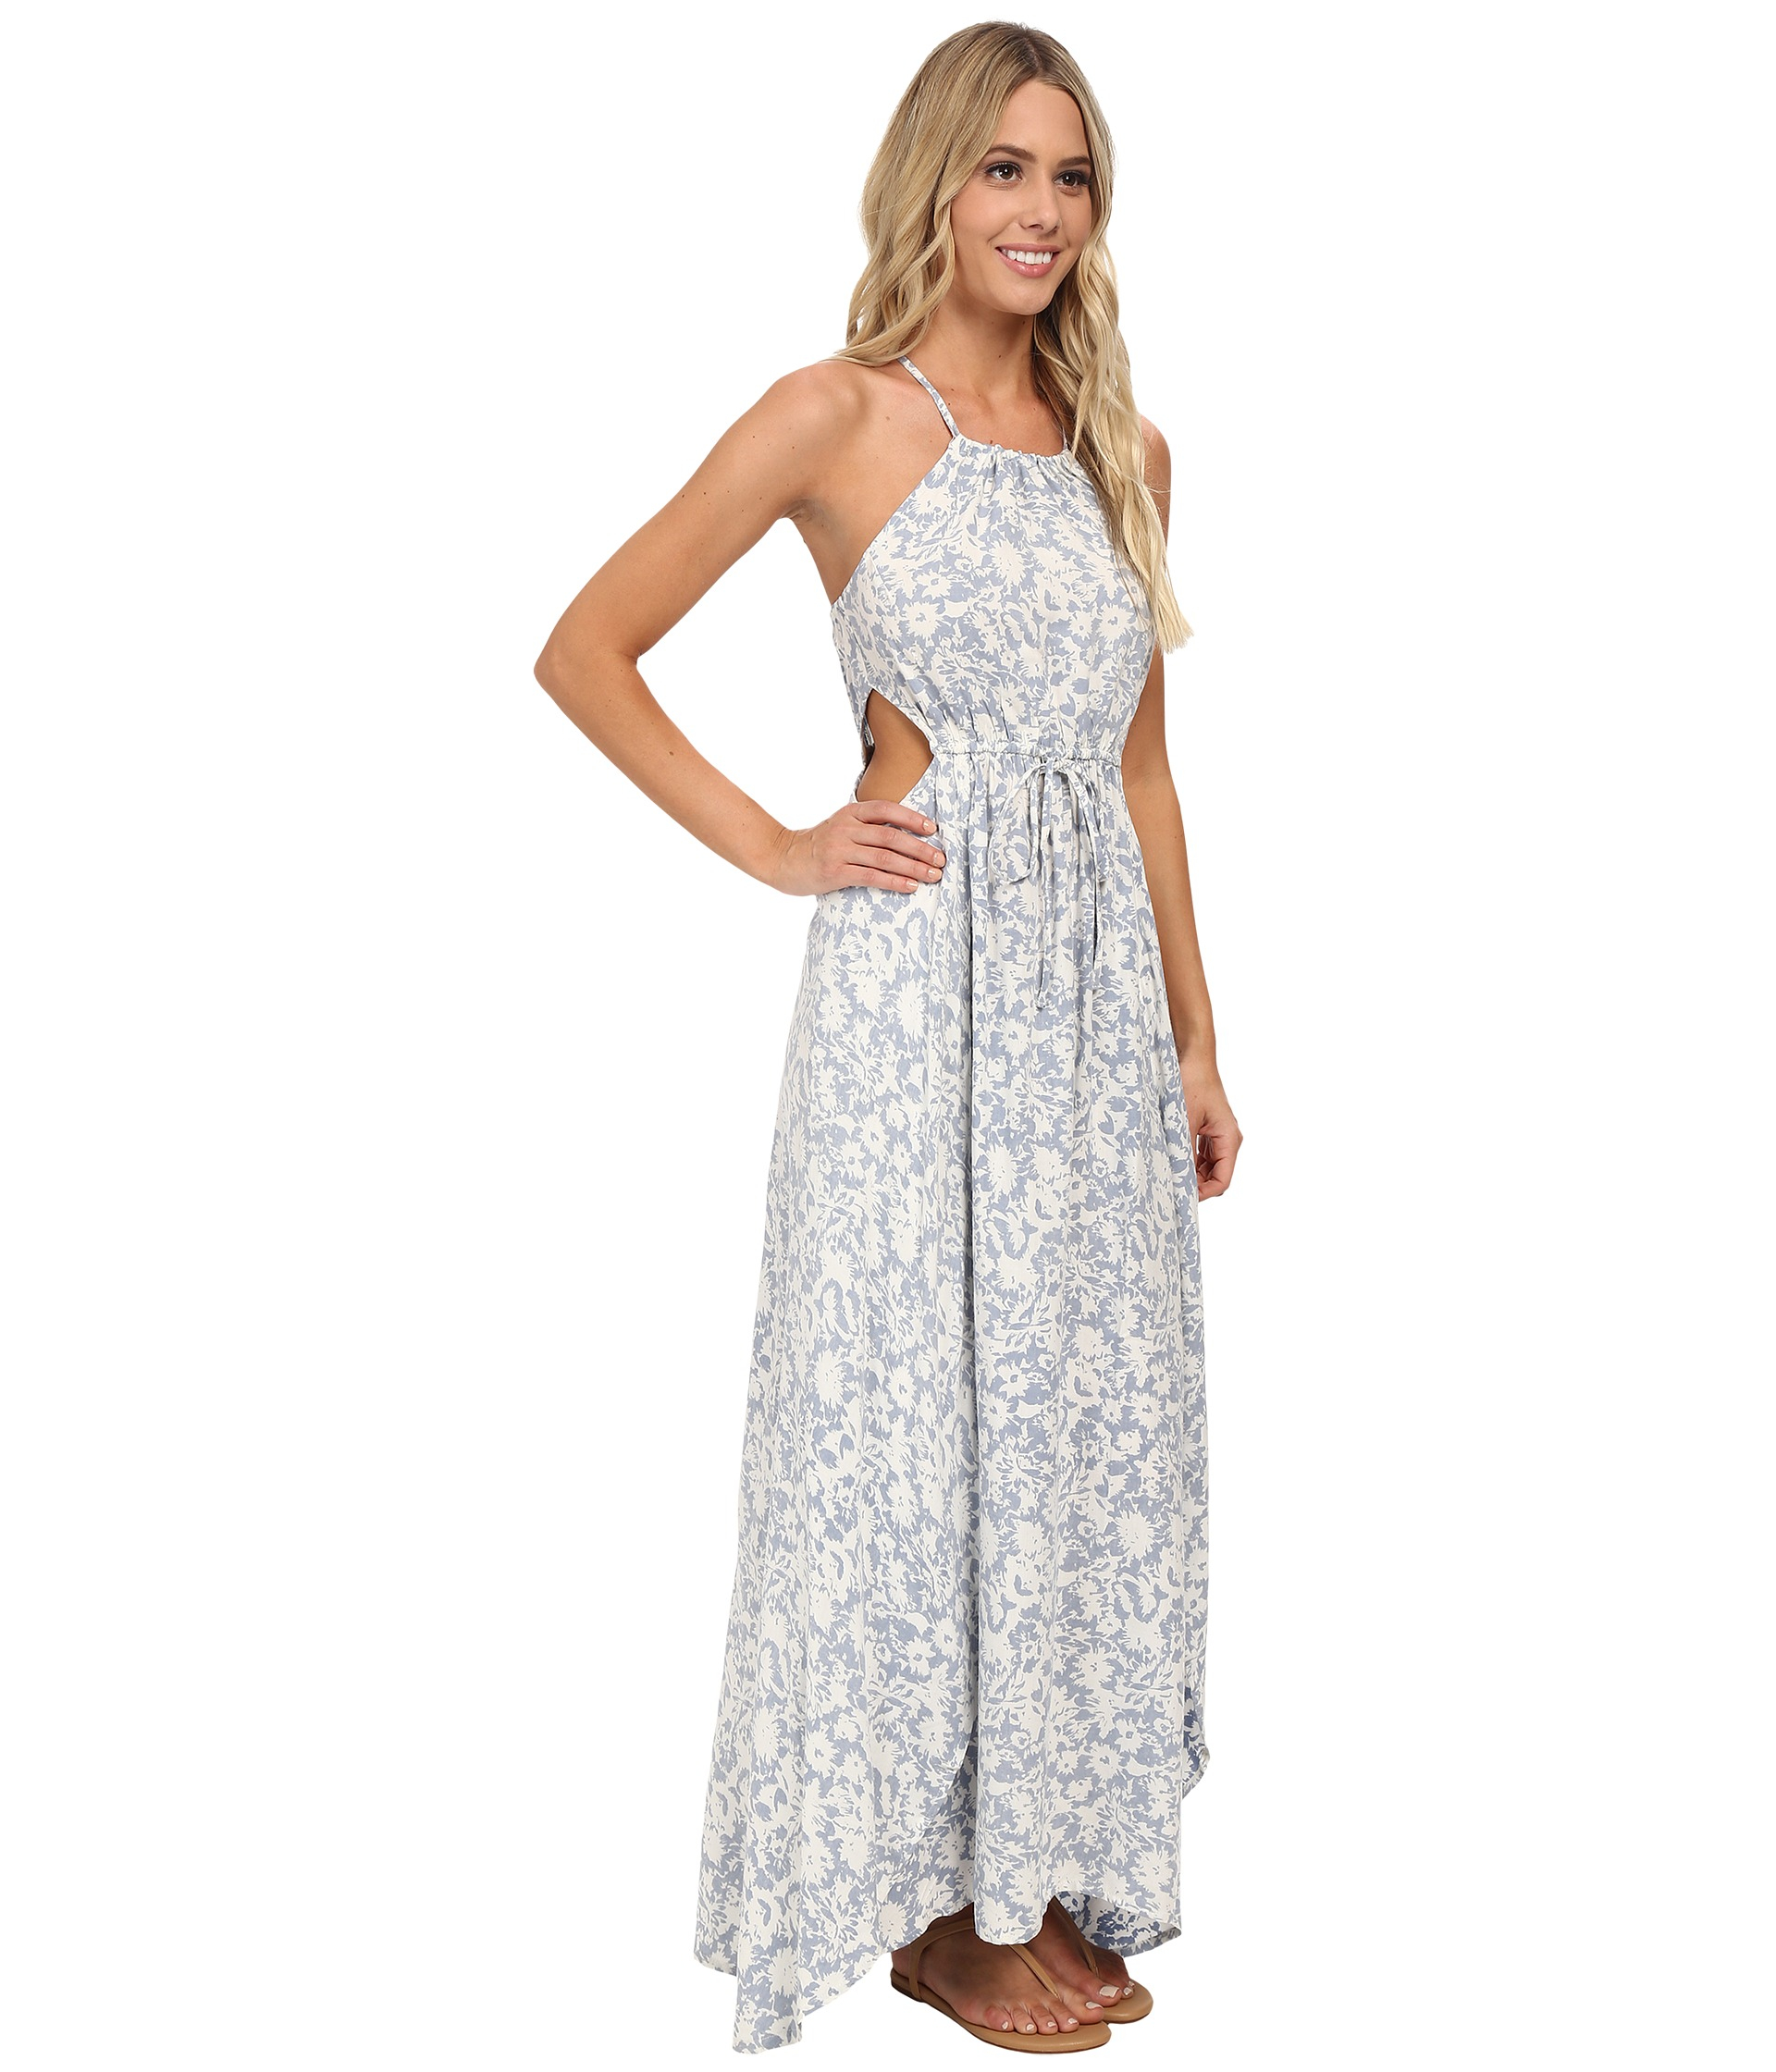 Billabong Sounds Of The Sea Maxi Dress in Blue - Lyst